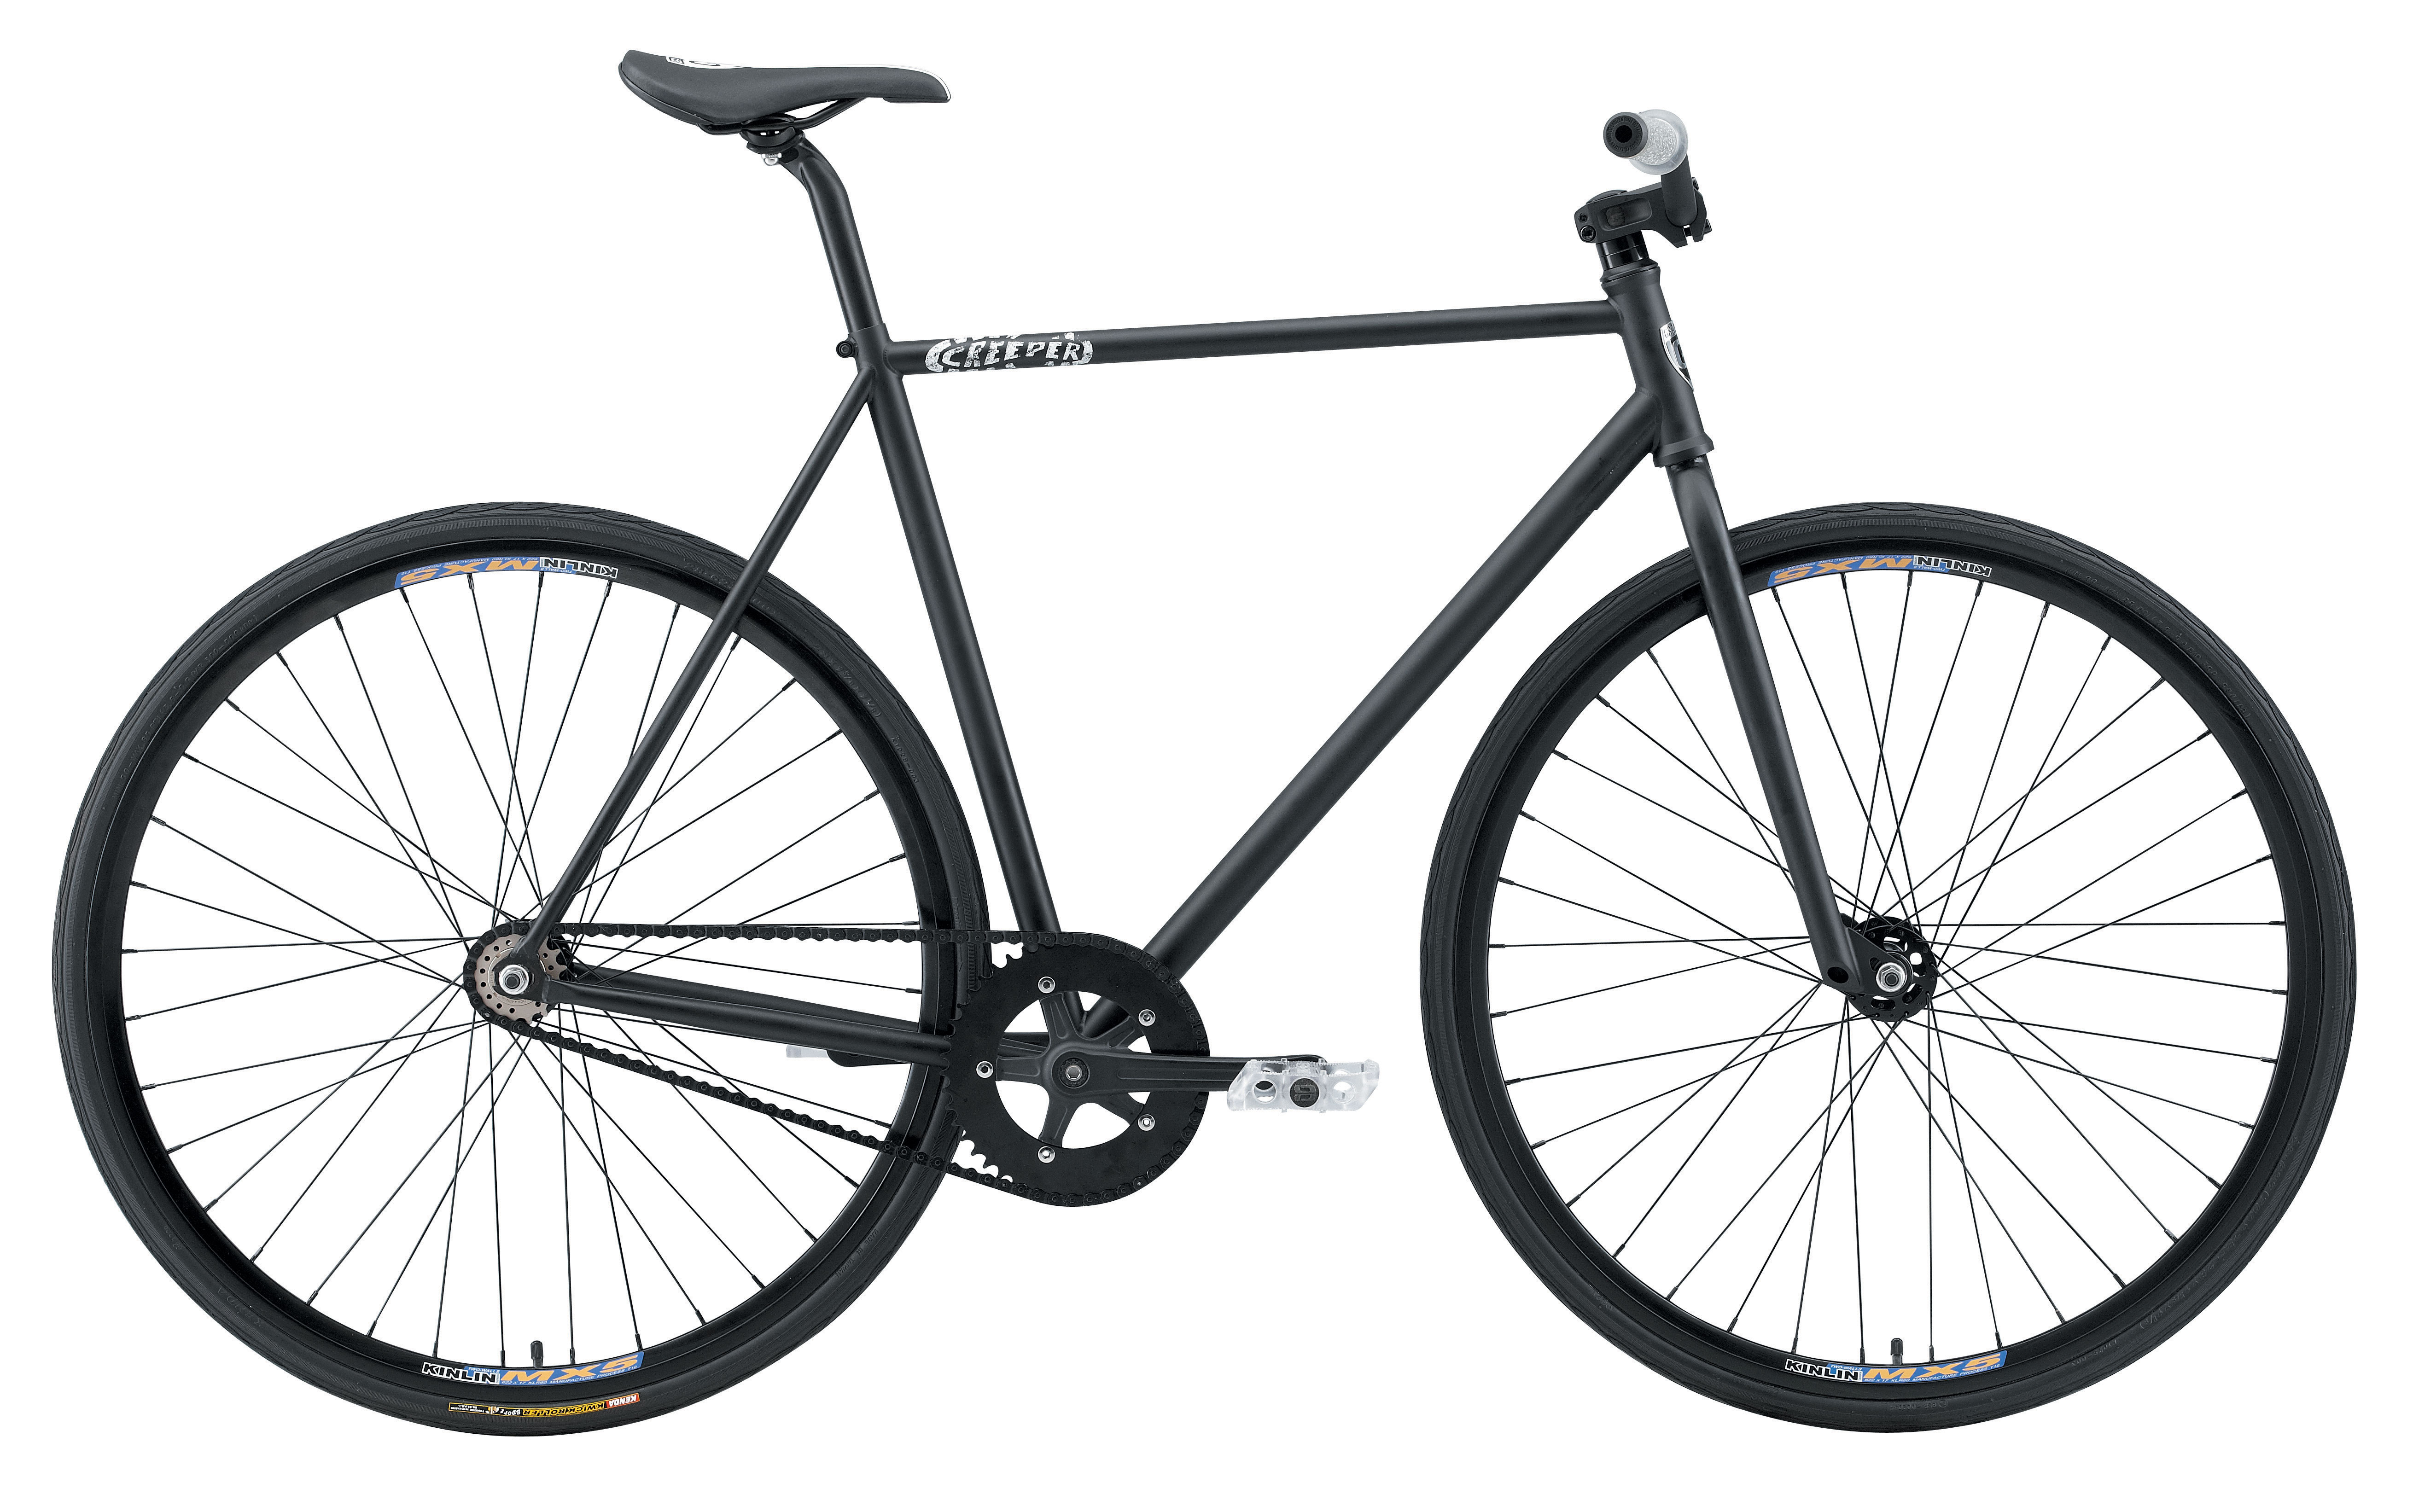 MTB Gran Royale Creeper Fixed Gear Bike 700C 56cm/22in - $399.95